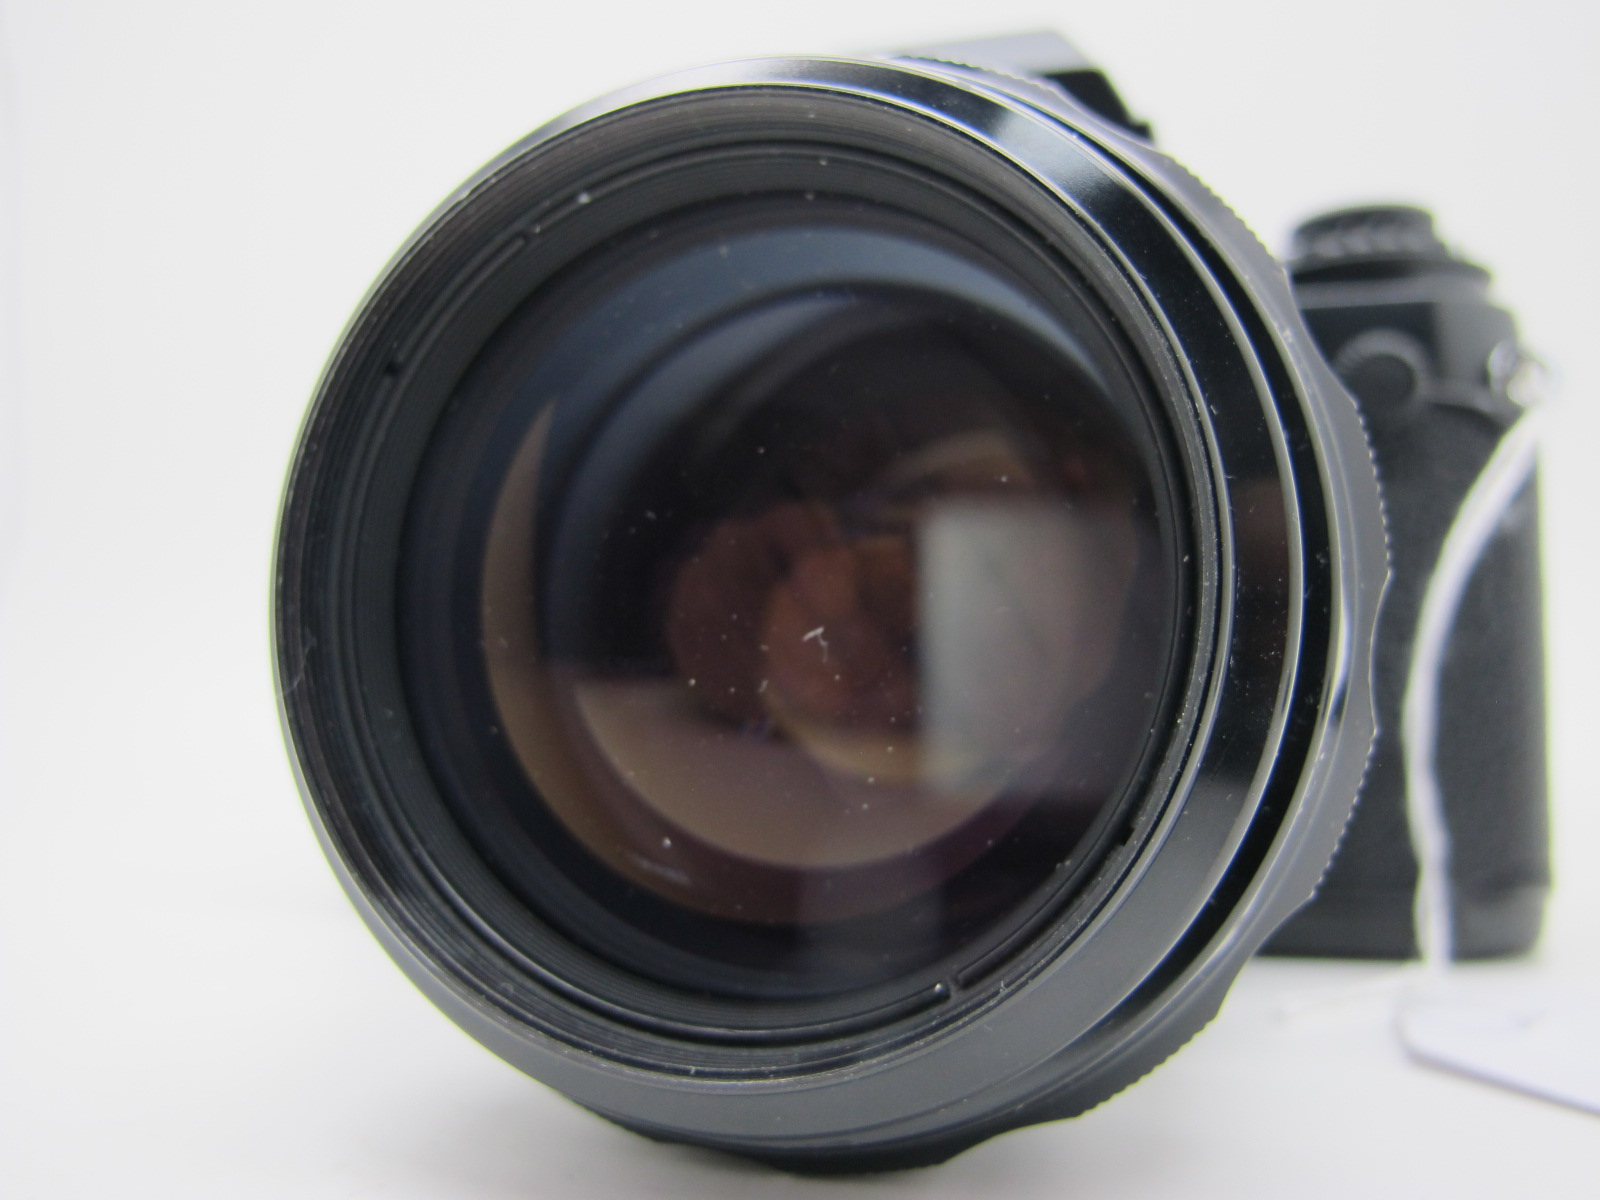 Nikon F3, with Nikkor-H Auto 1-18 f=85mm lens. - Image 2 of 9